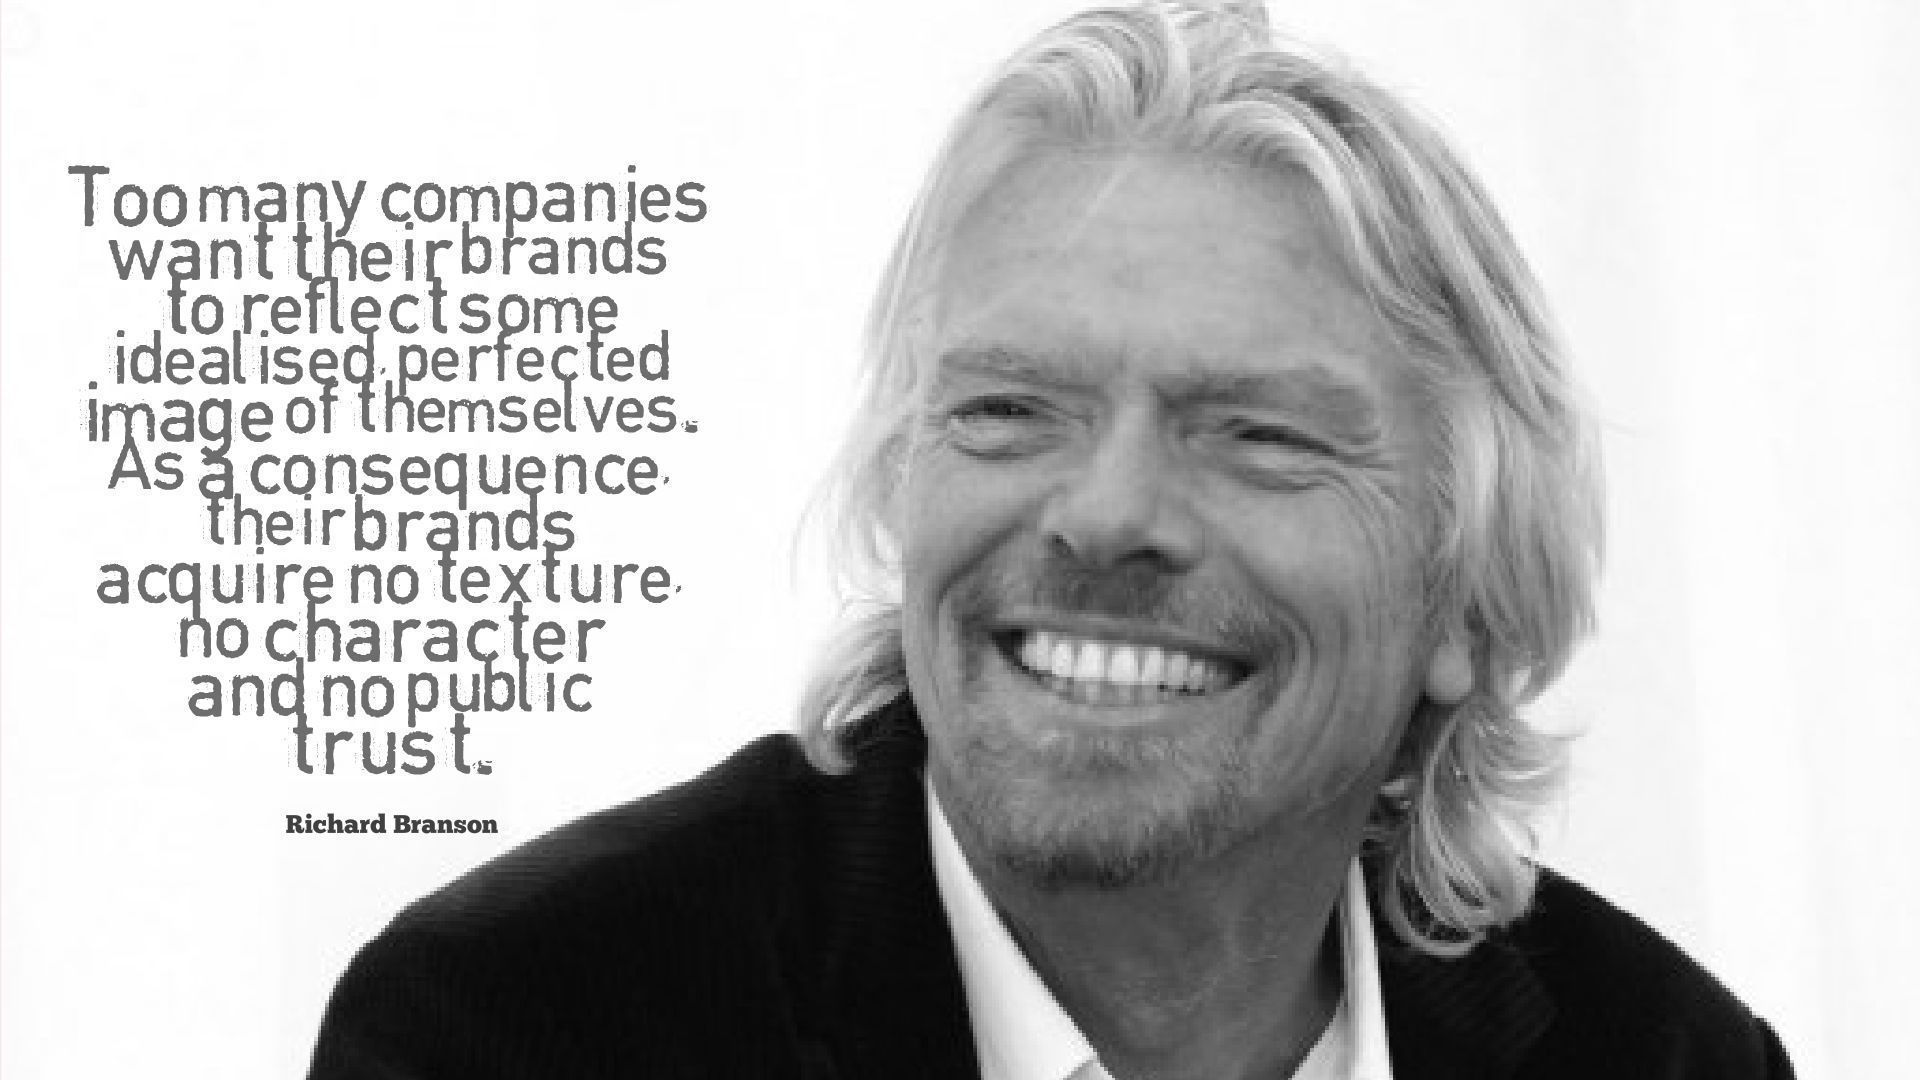 Richard Branson Quotes Wallpaper 10855   Baltana 1920x1080